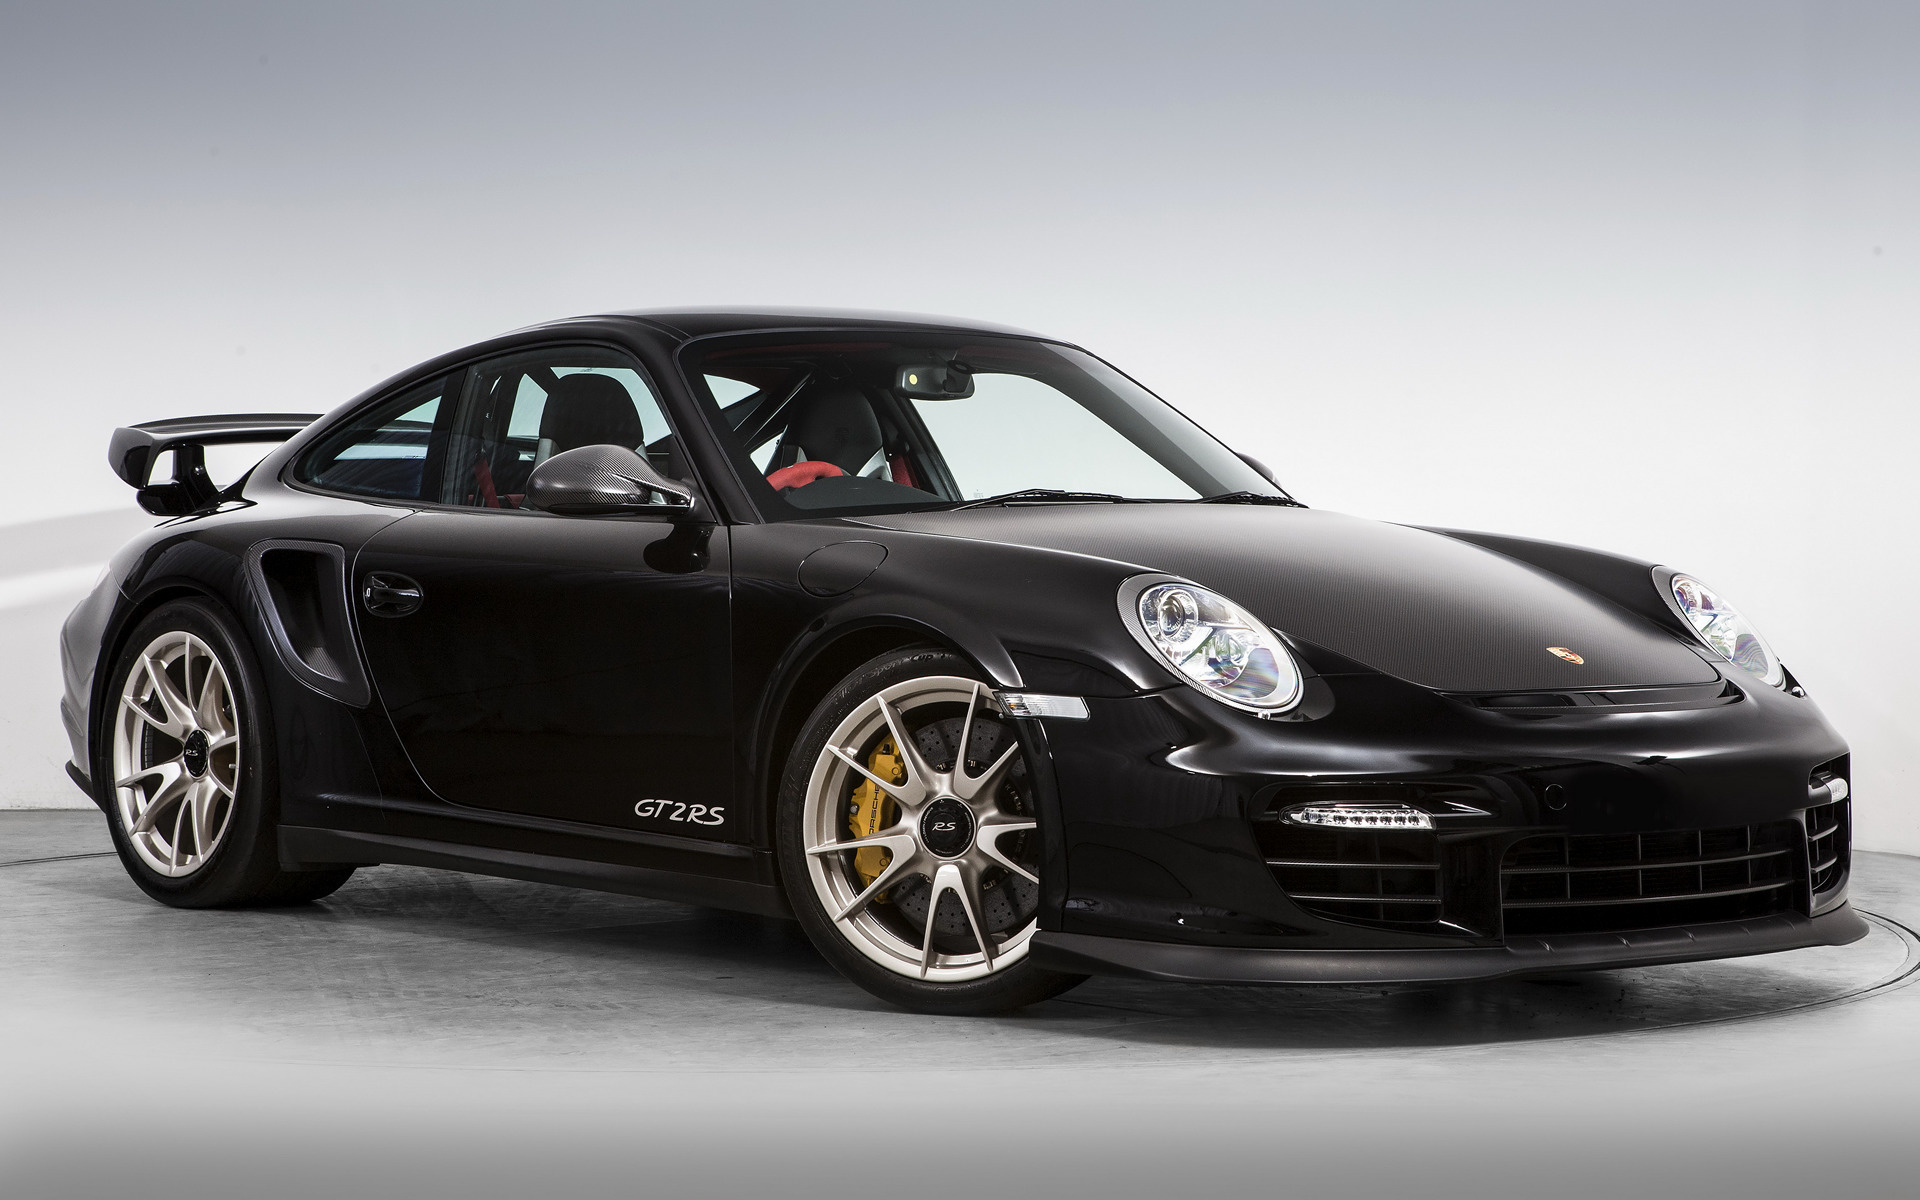 Porsche 911 Gt2 Rs 2010 Uk Wallpapers And Hd Images